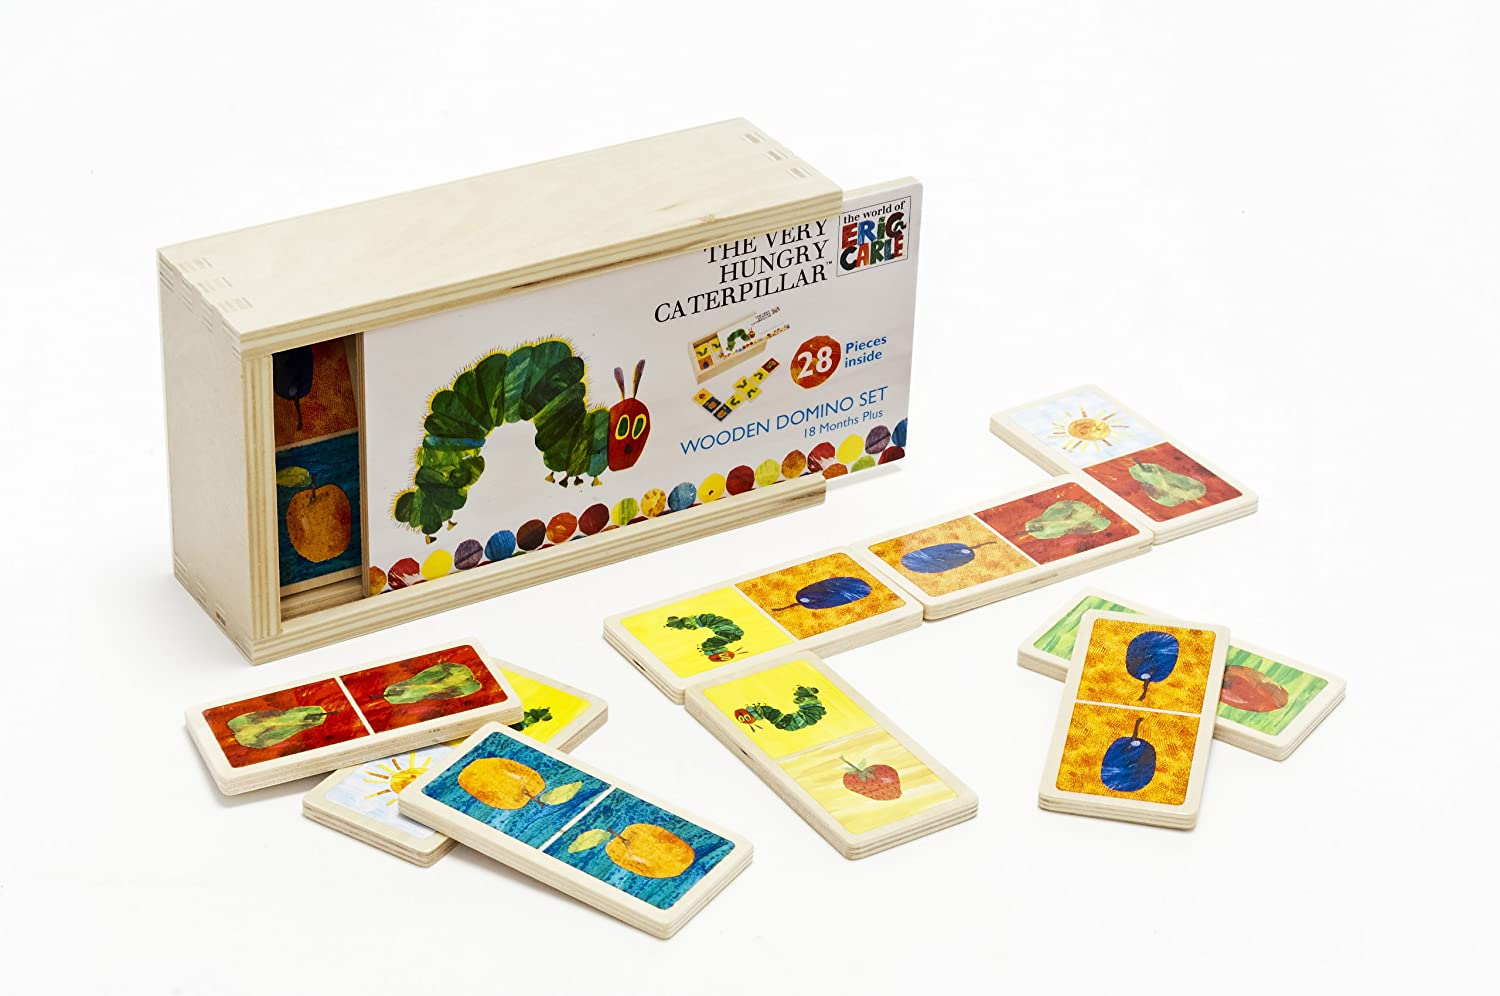 Rainbow Designs Eric Carle HC0934 Very Hungry Caterpillar Wooden Dominoes